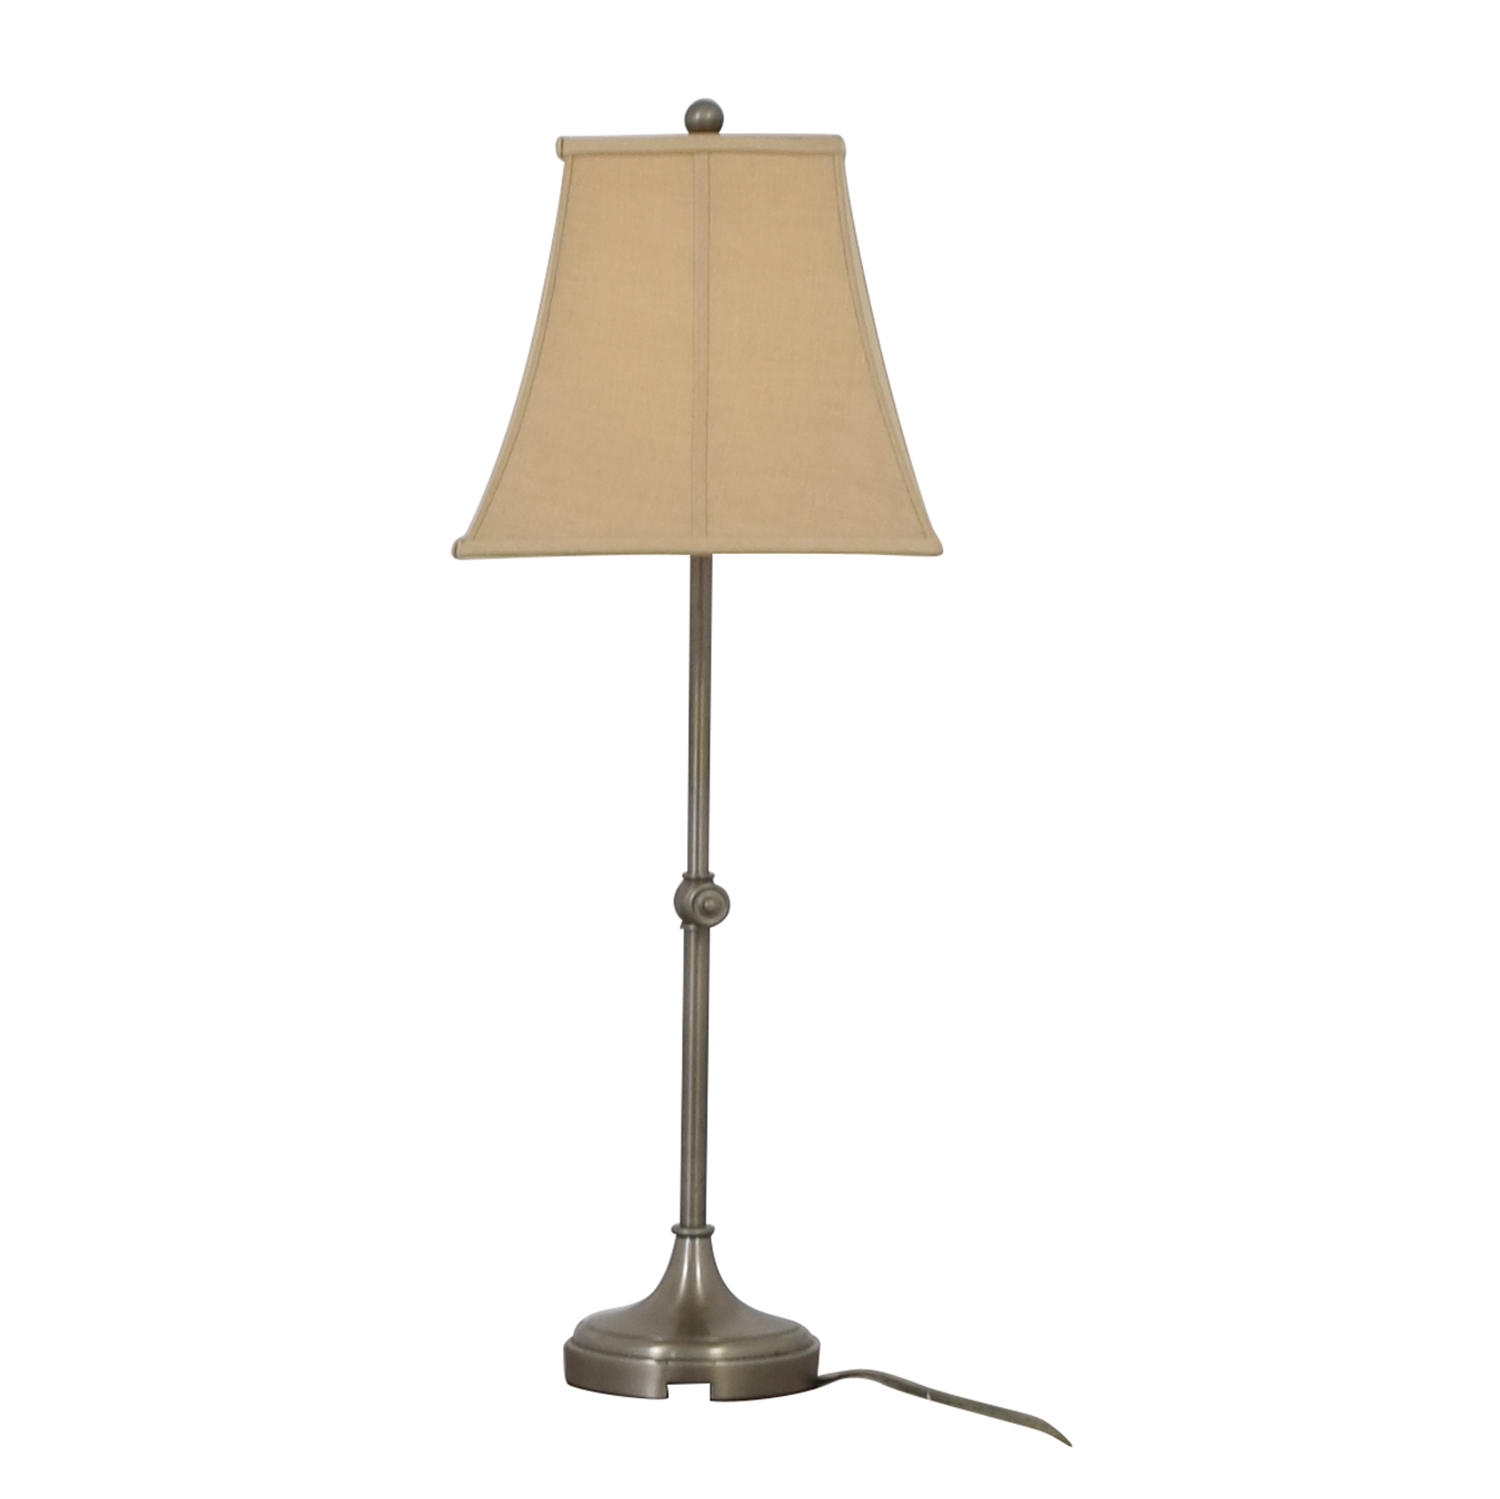 Pottery Barn Table Lamp / Decor